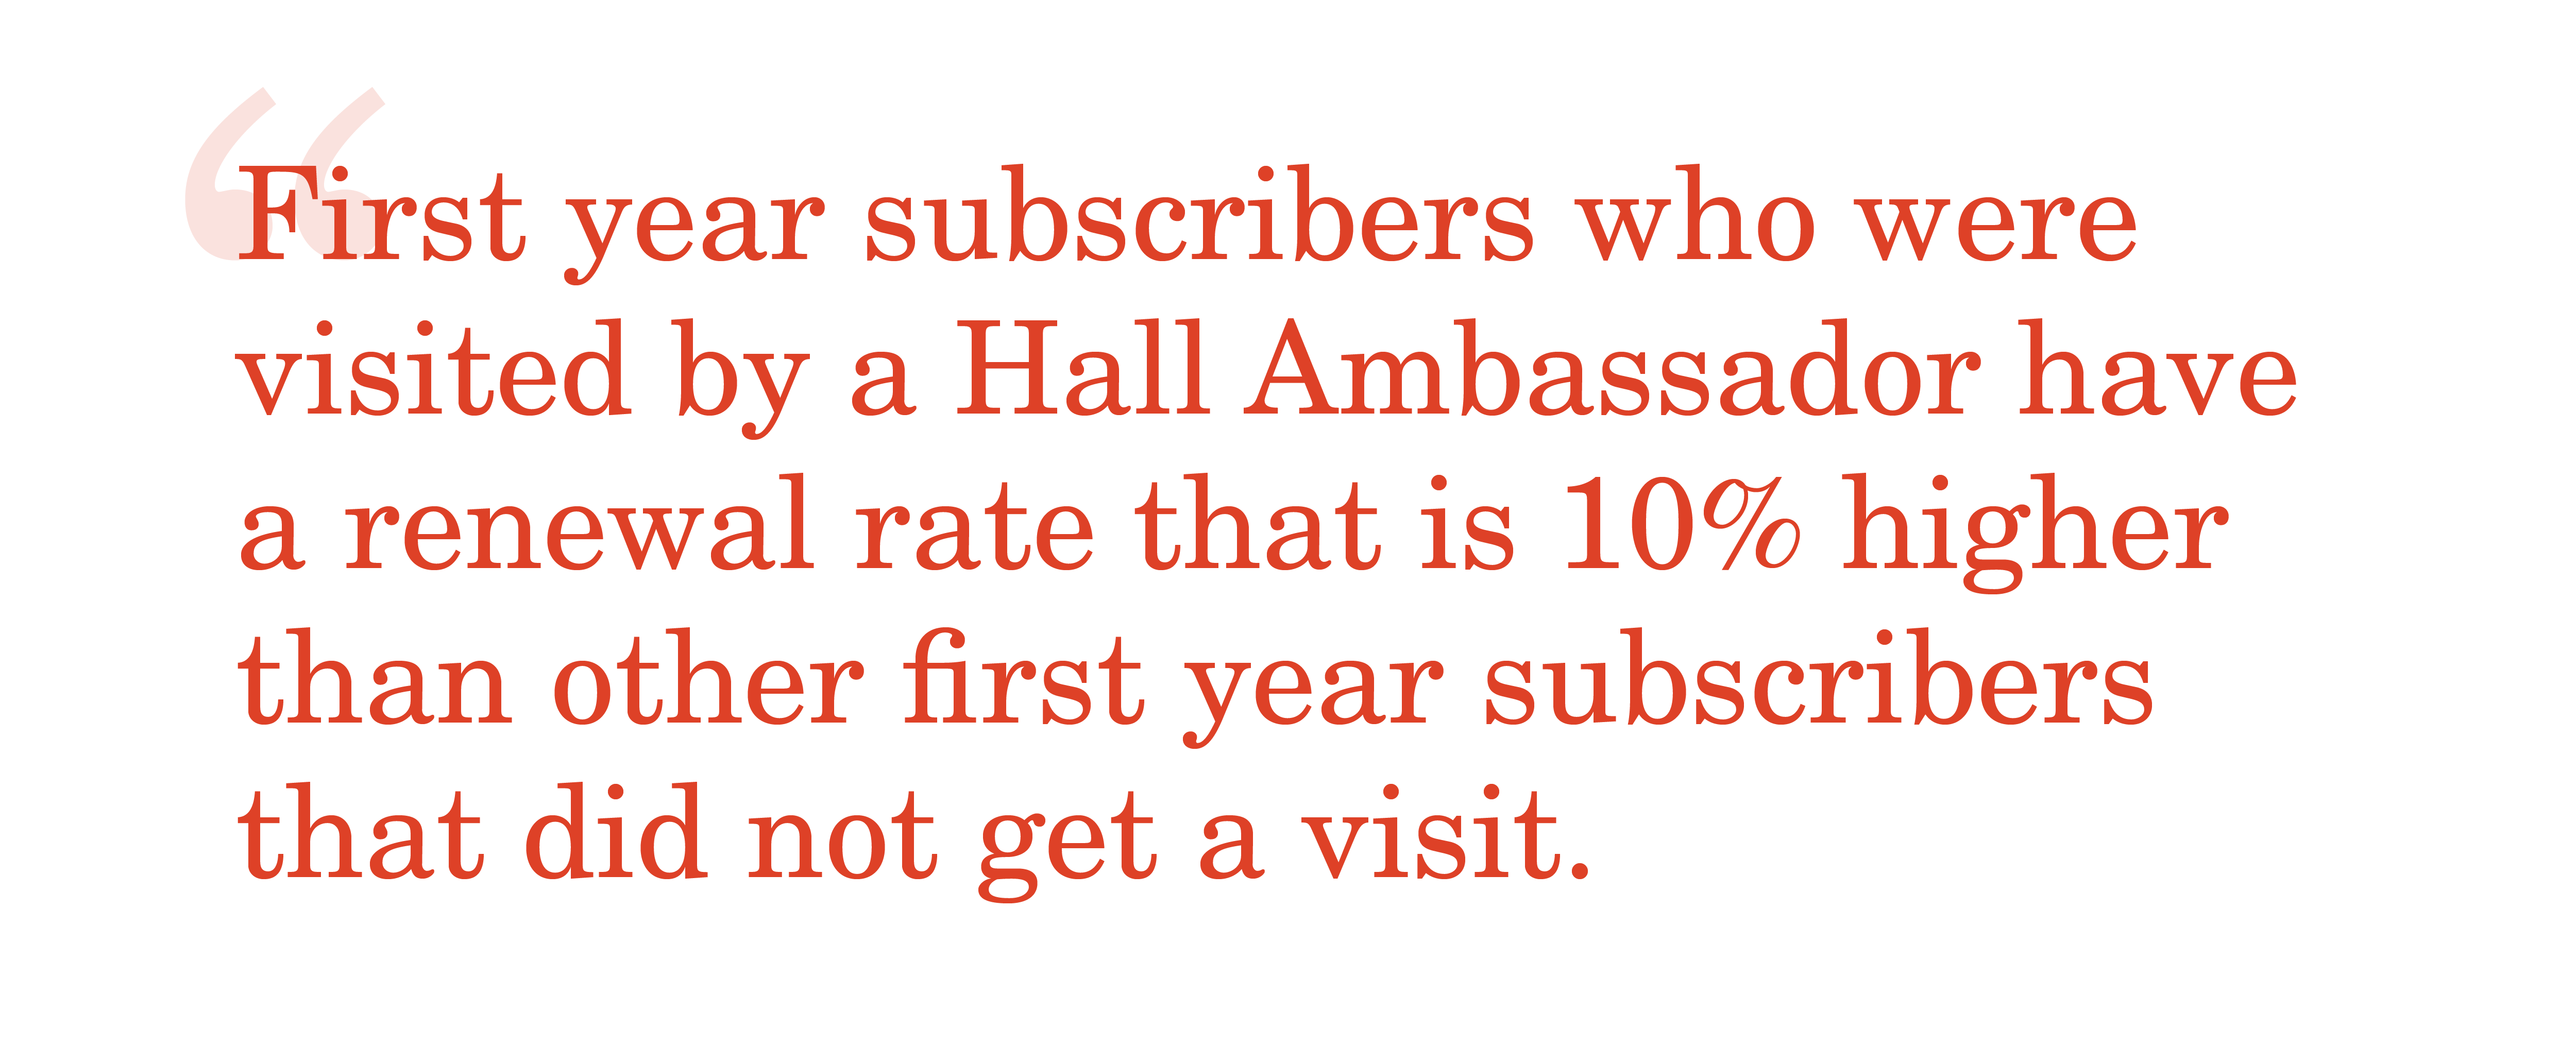 Blog_Face-to-Face_Interaction_with_Subscribers-05-1.png